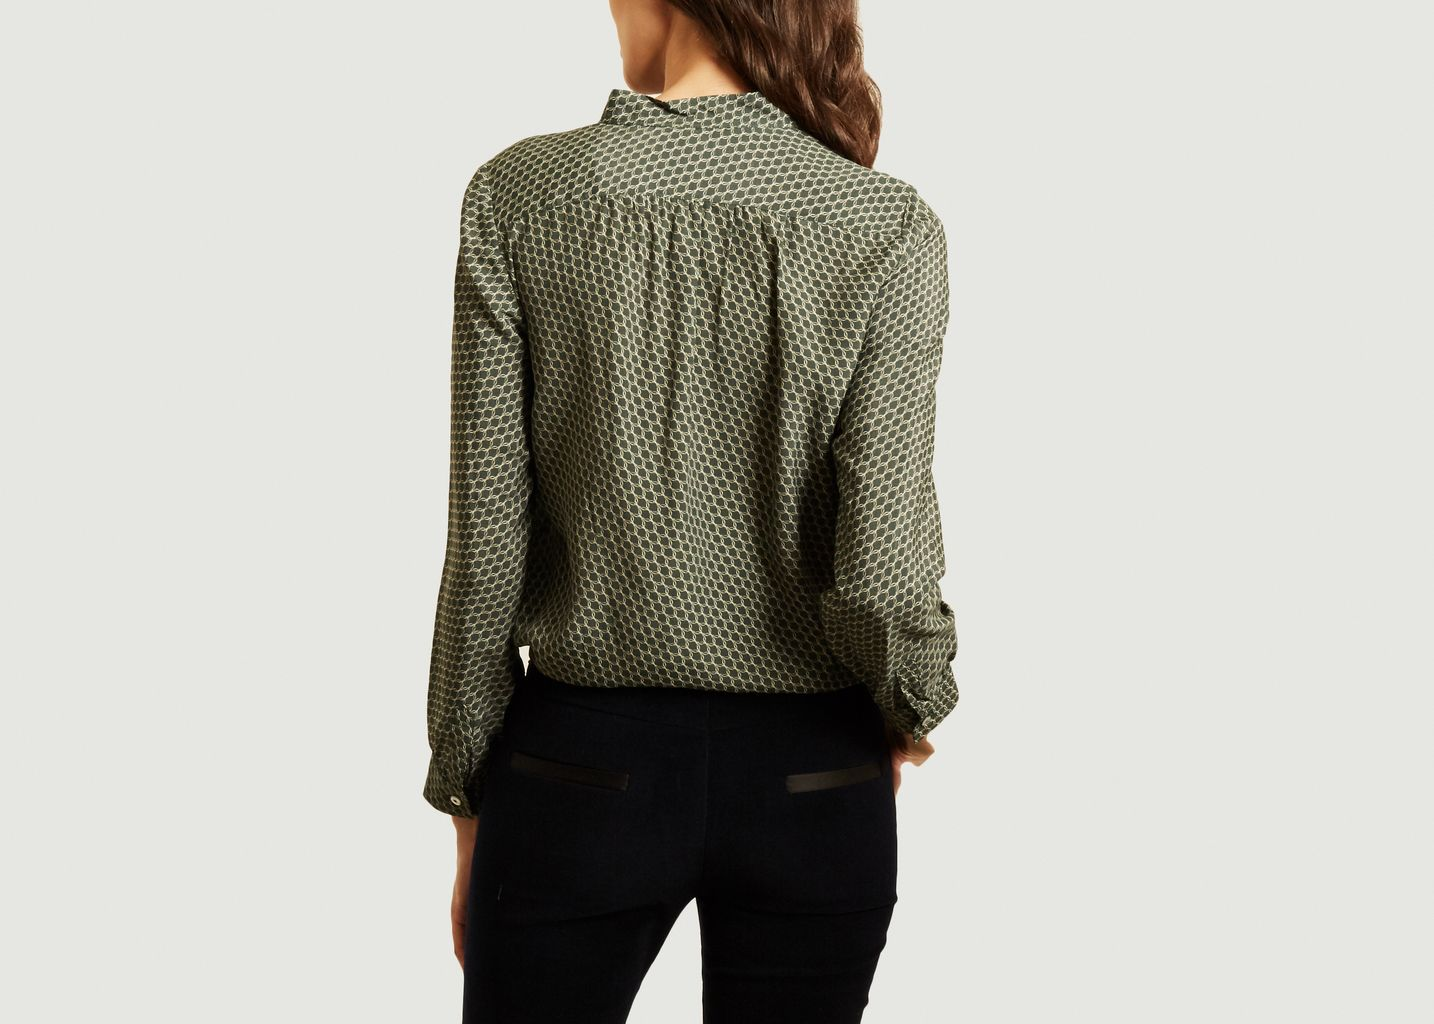 Blouse Alice - A.P.C.